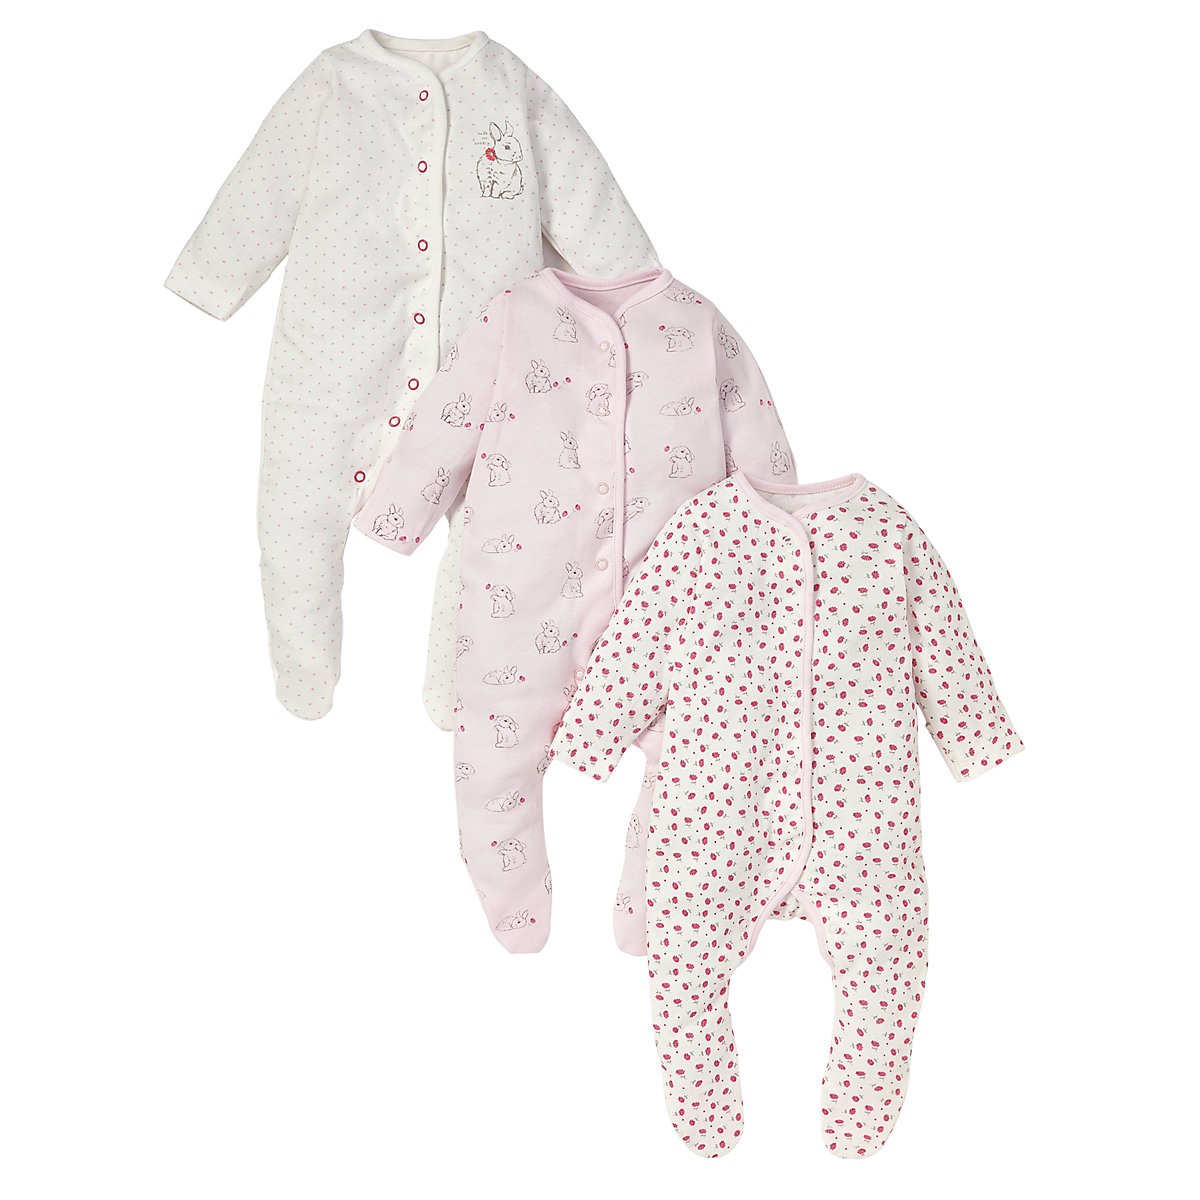 Mothercare Newborn Bunny Sleepsuits - 3 Pack